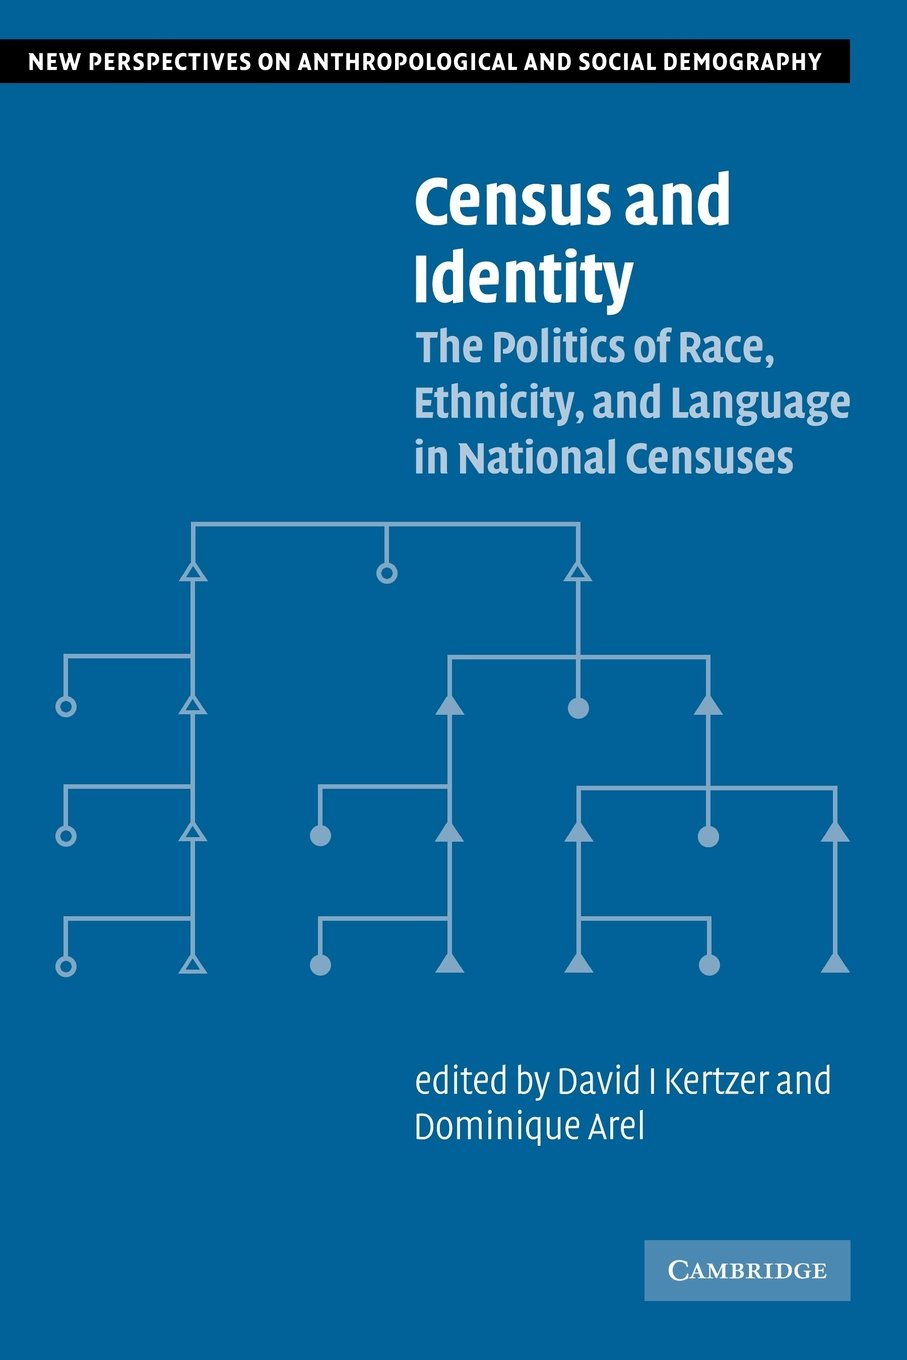 Census and Identity: The Politics of Race, Ethnicity, and Language in National Censuses (New Perspectives on Anthropological and Social Demography) by David I Kertzer